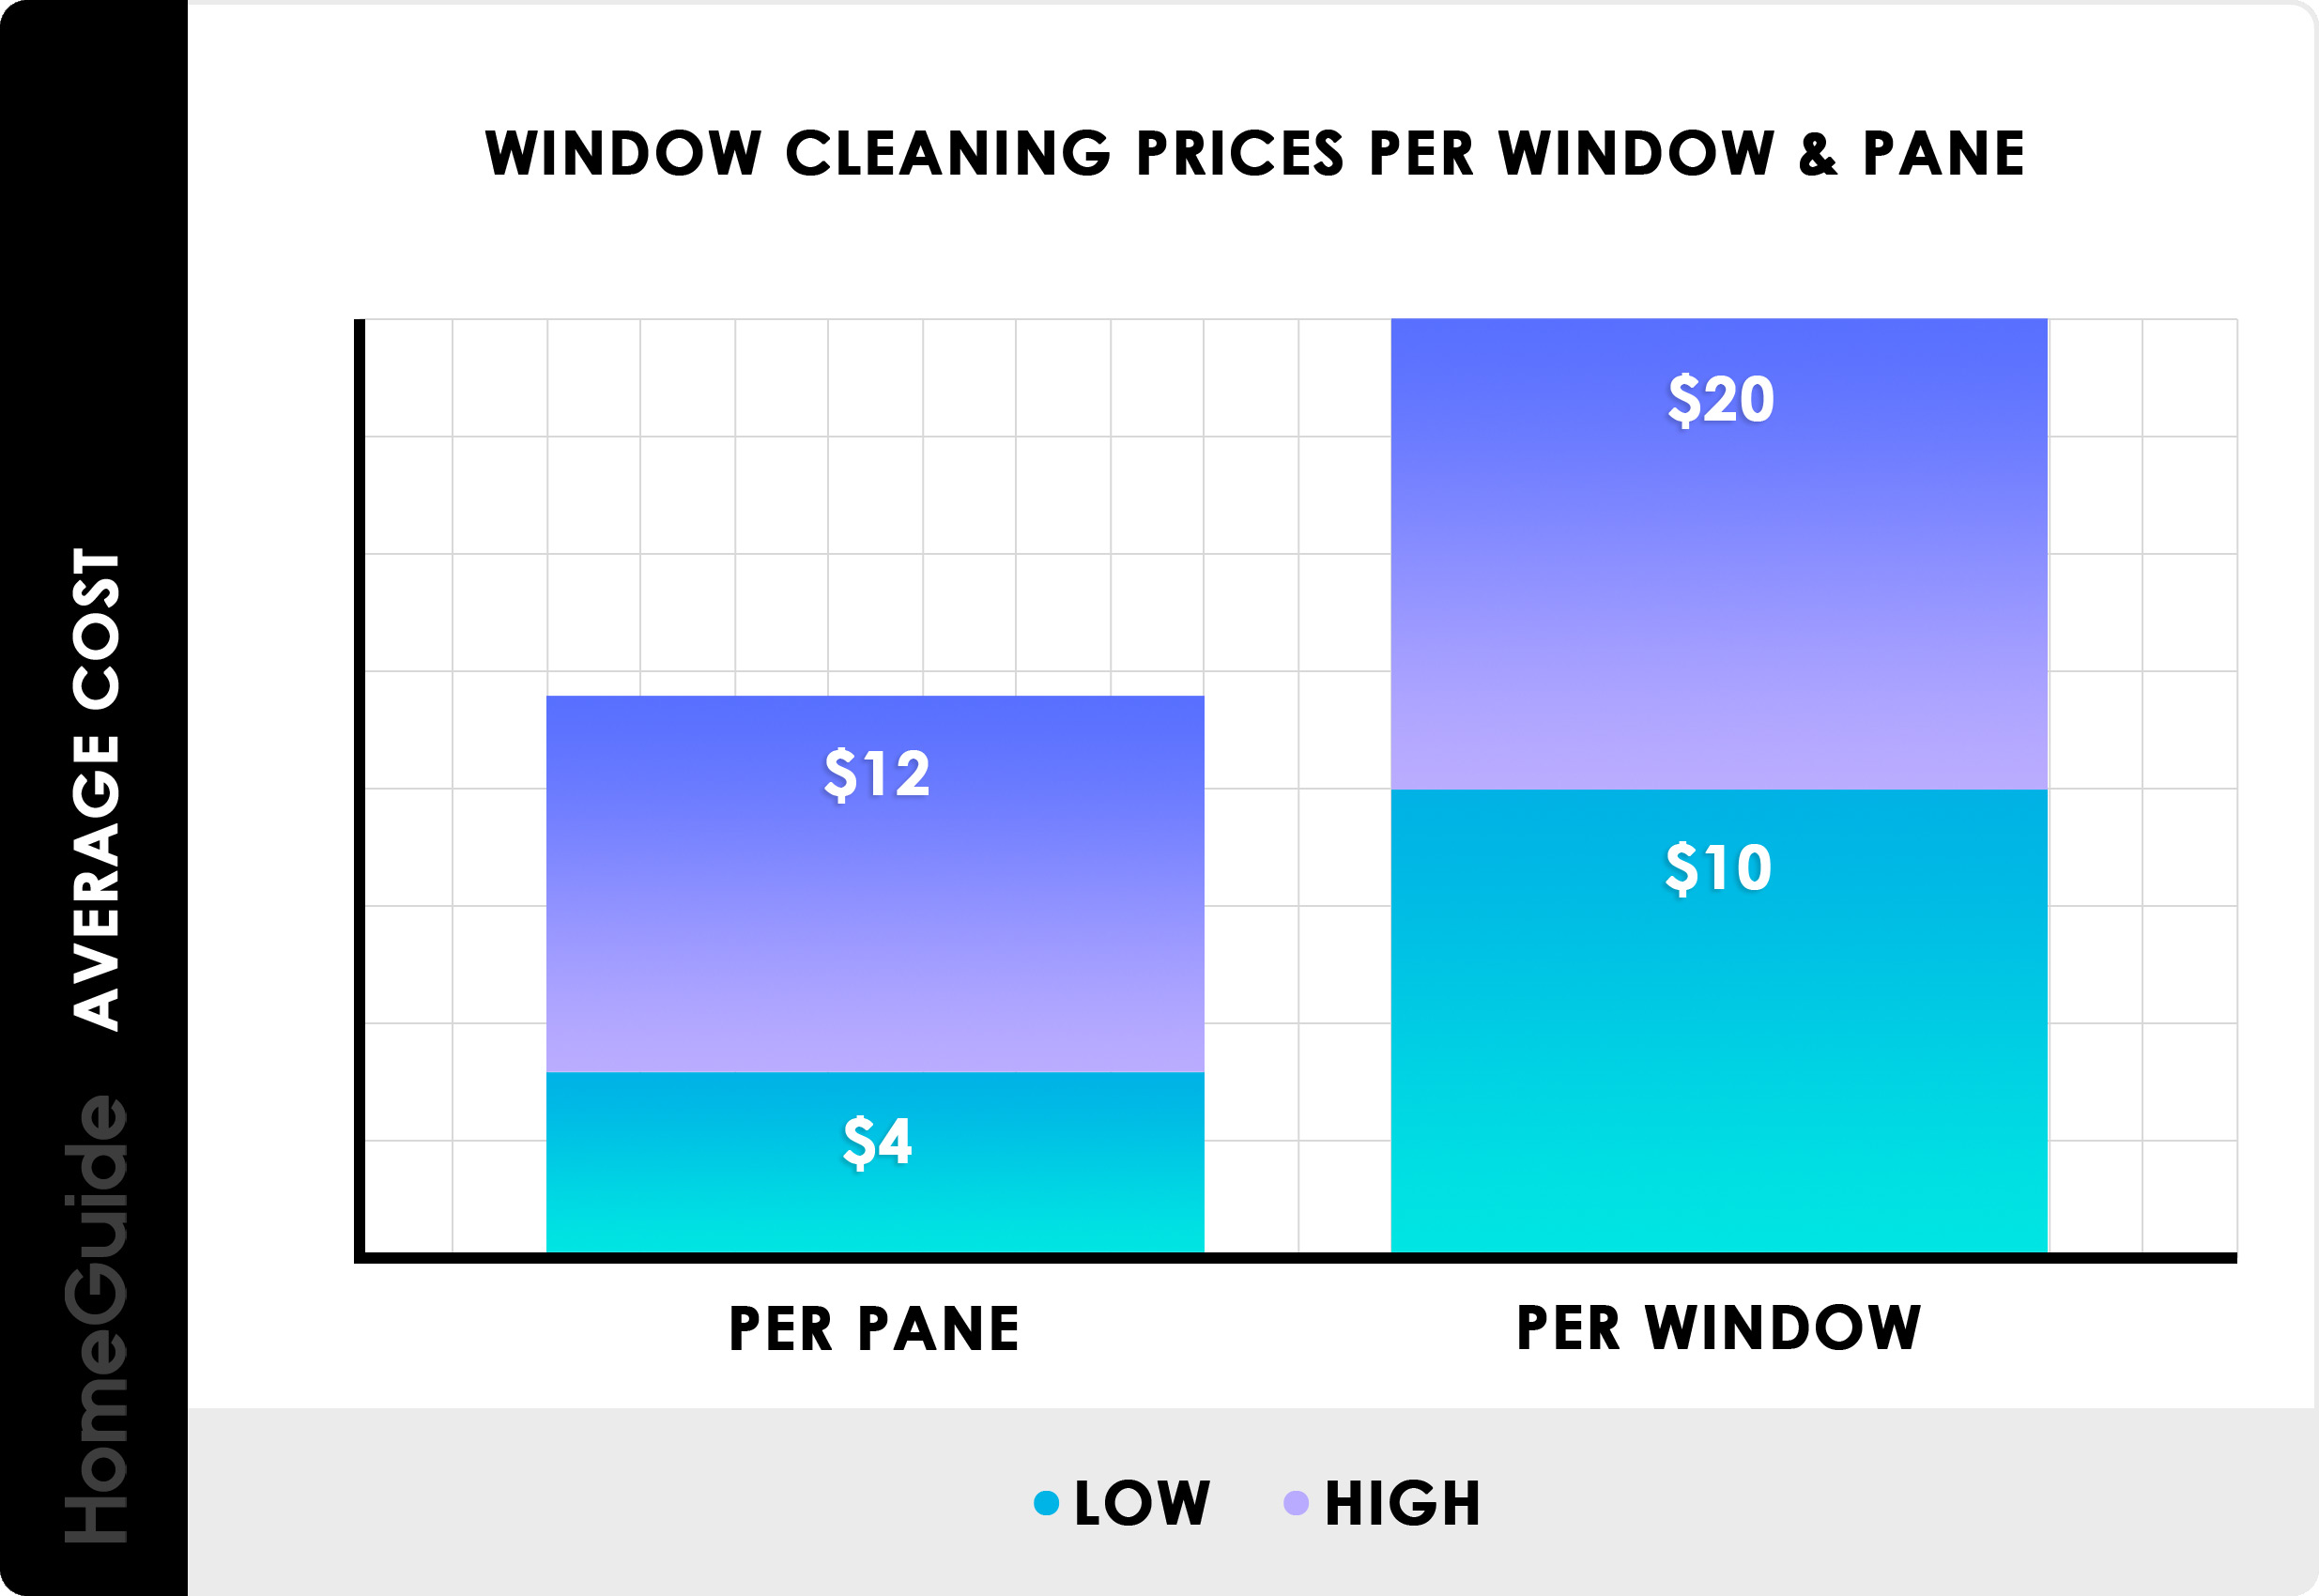 Window Cleaning Prices Per Window & Per Pane Chart